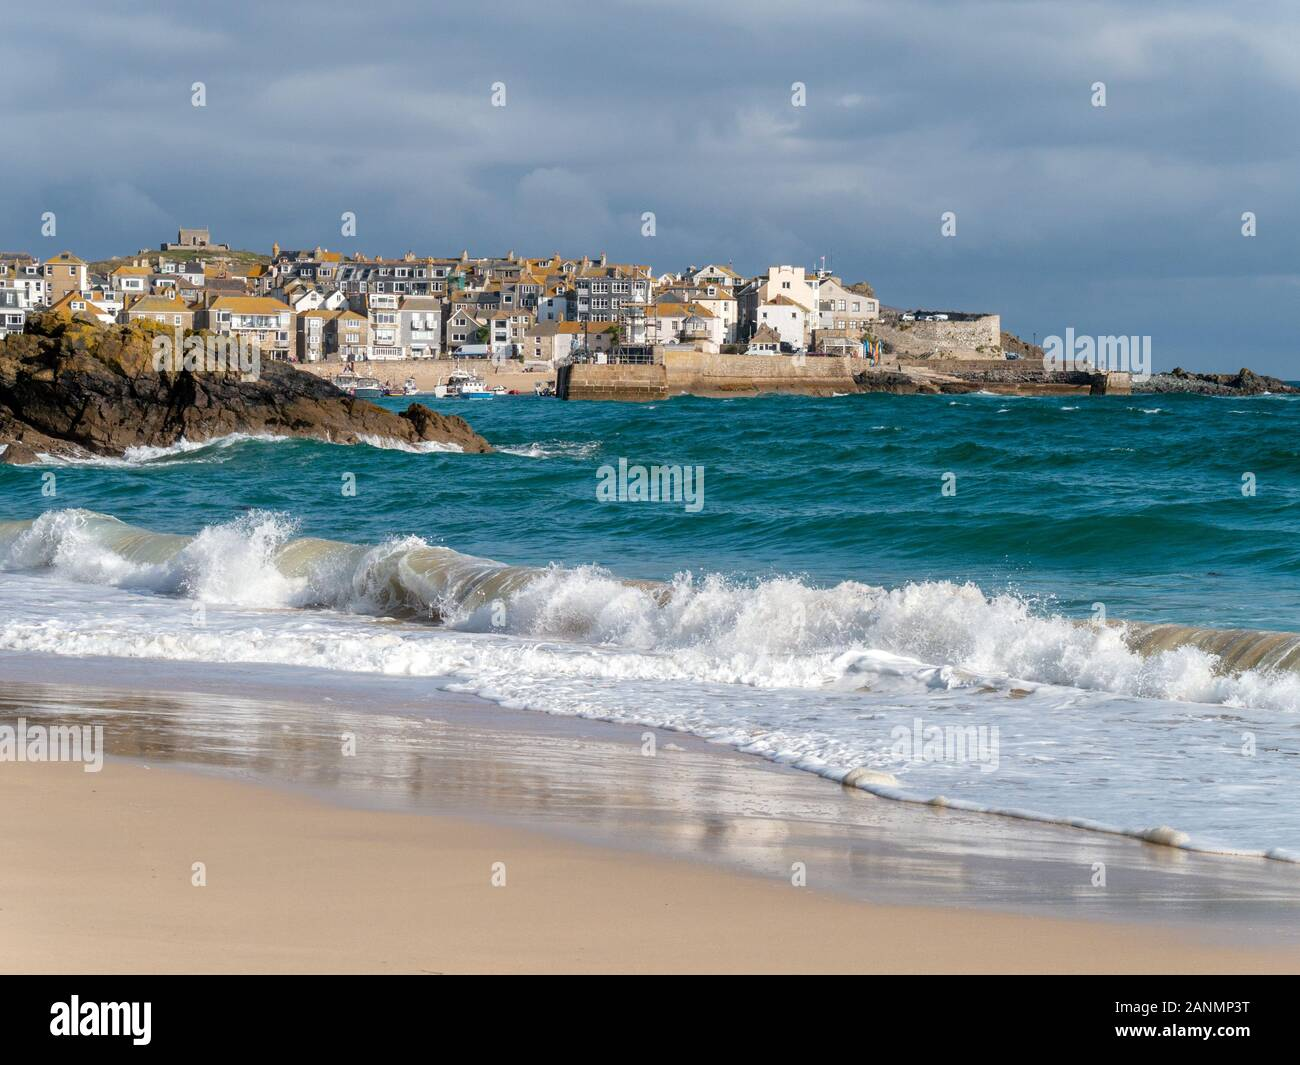 The seaside town of St. Ives a seen over the waves and sea surf  of sandy Porthminster Beach, Cornwall, England, UK. Stock Photo